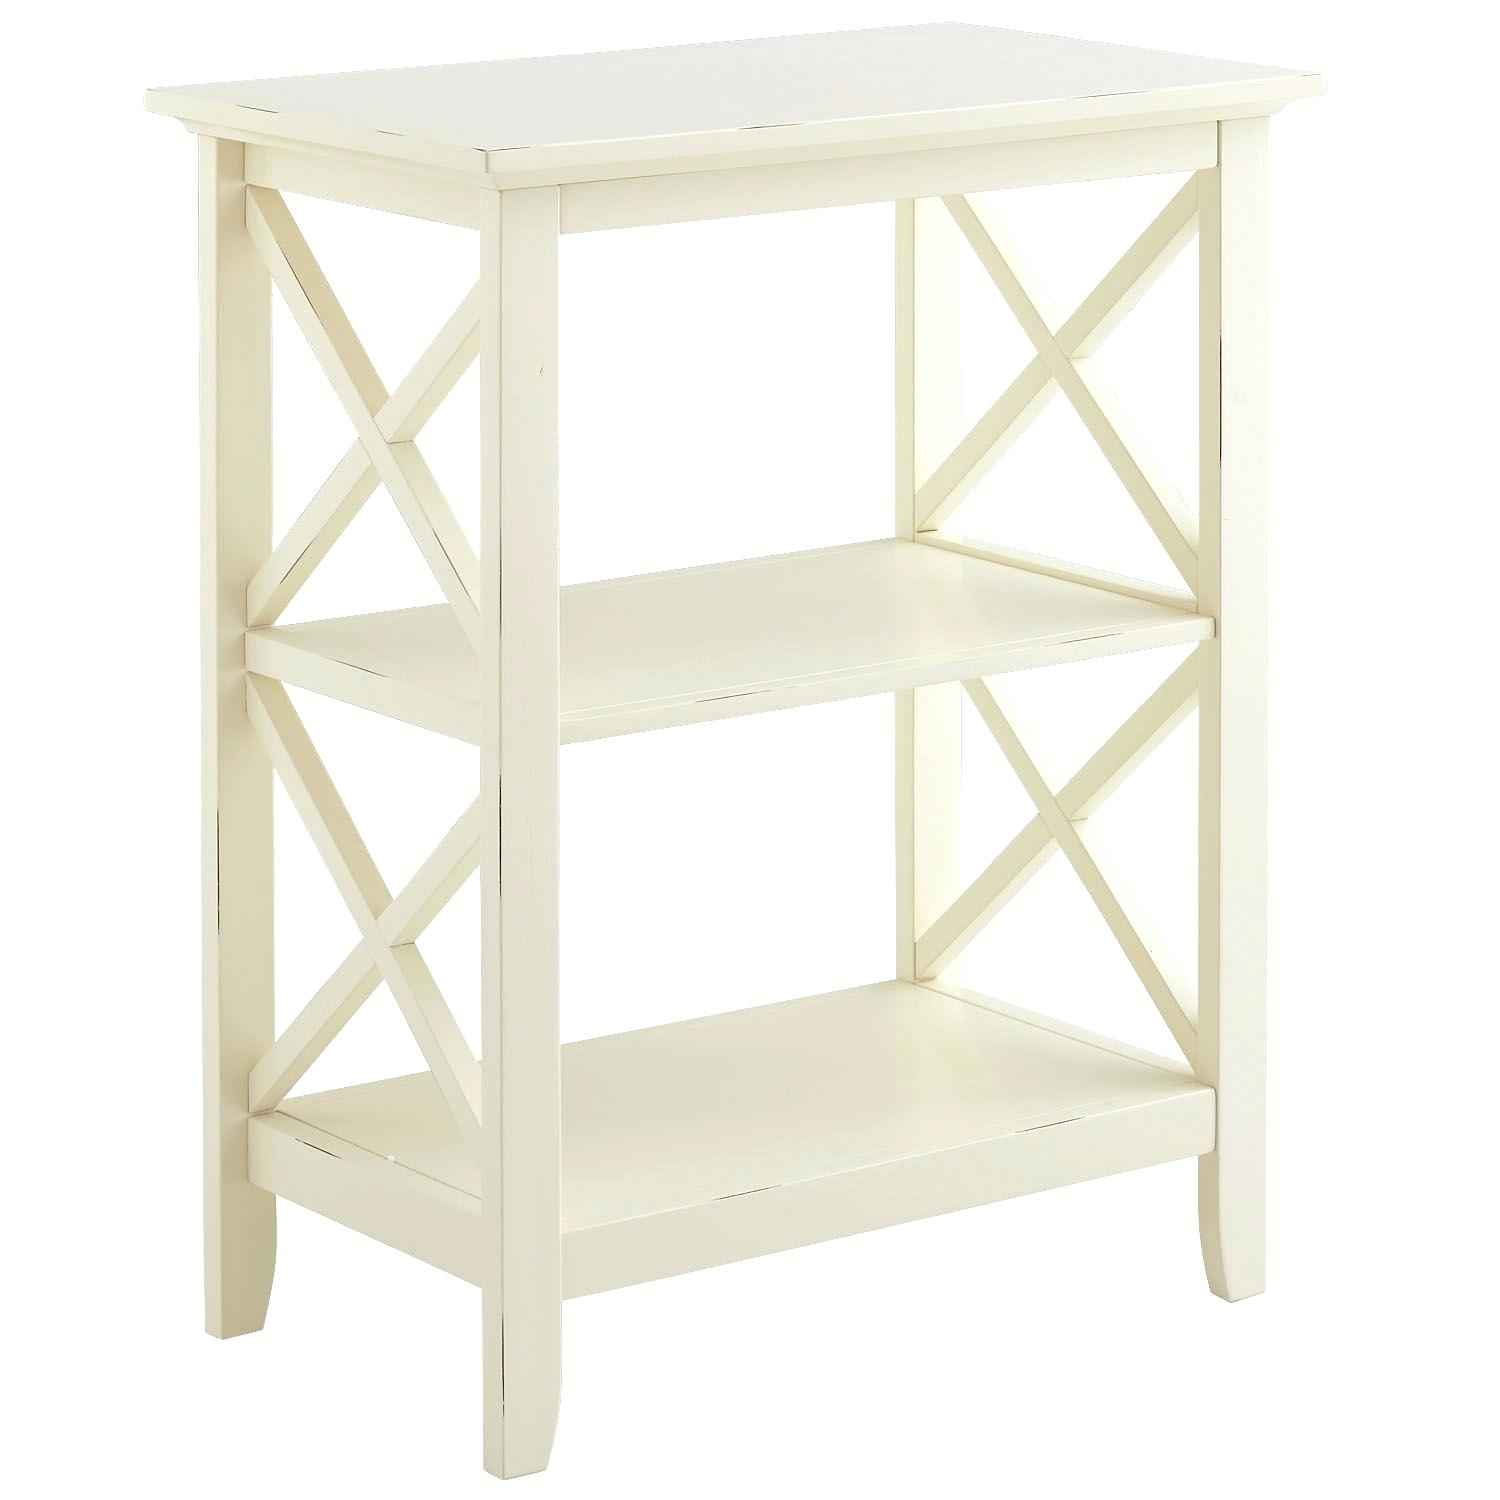 decoration antique white one drawer accent table small outdoor patio dale tiffany northlake lamp black and big cloth portable grill corner red real wood end tables coral chair